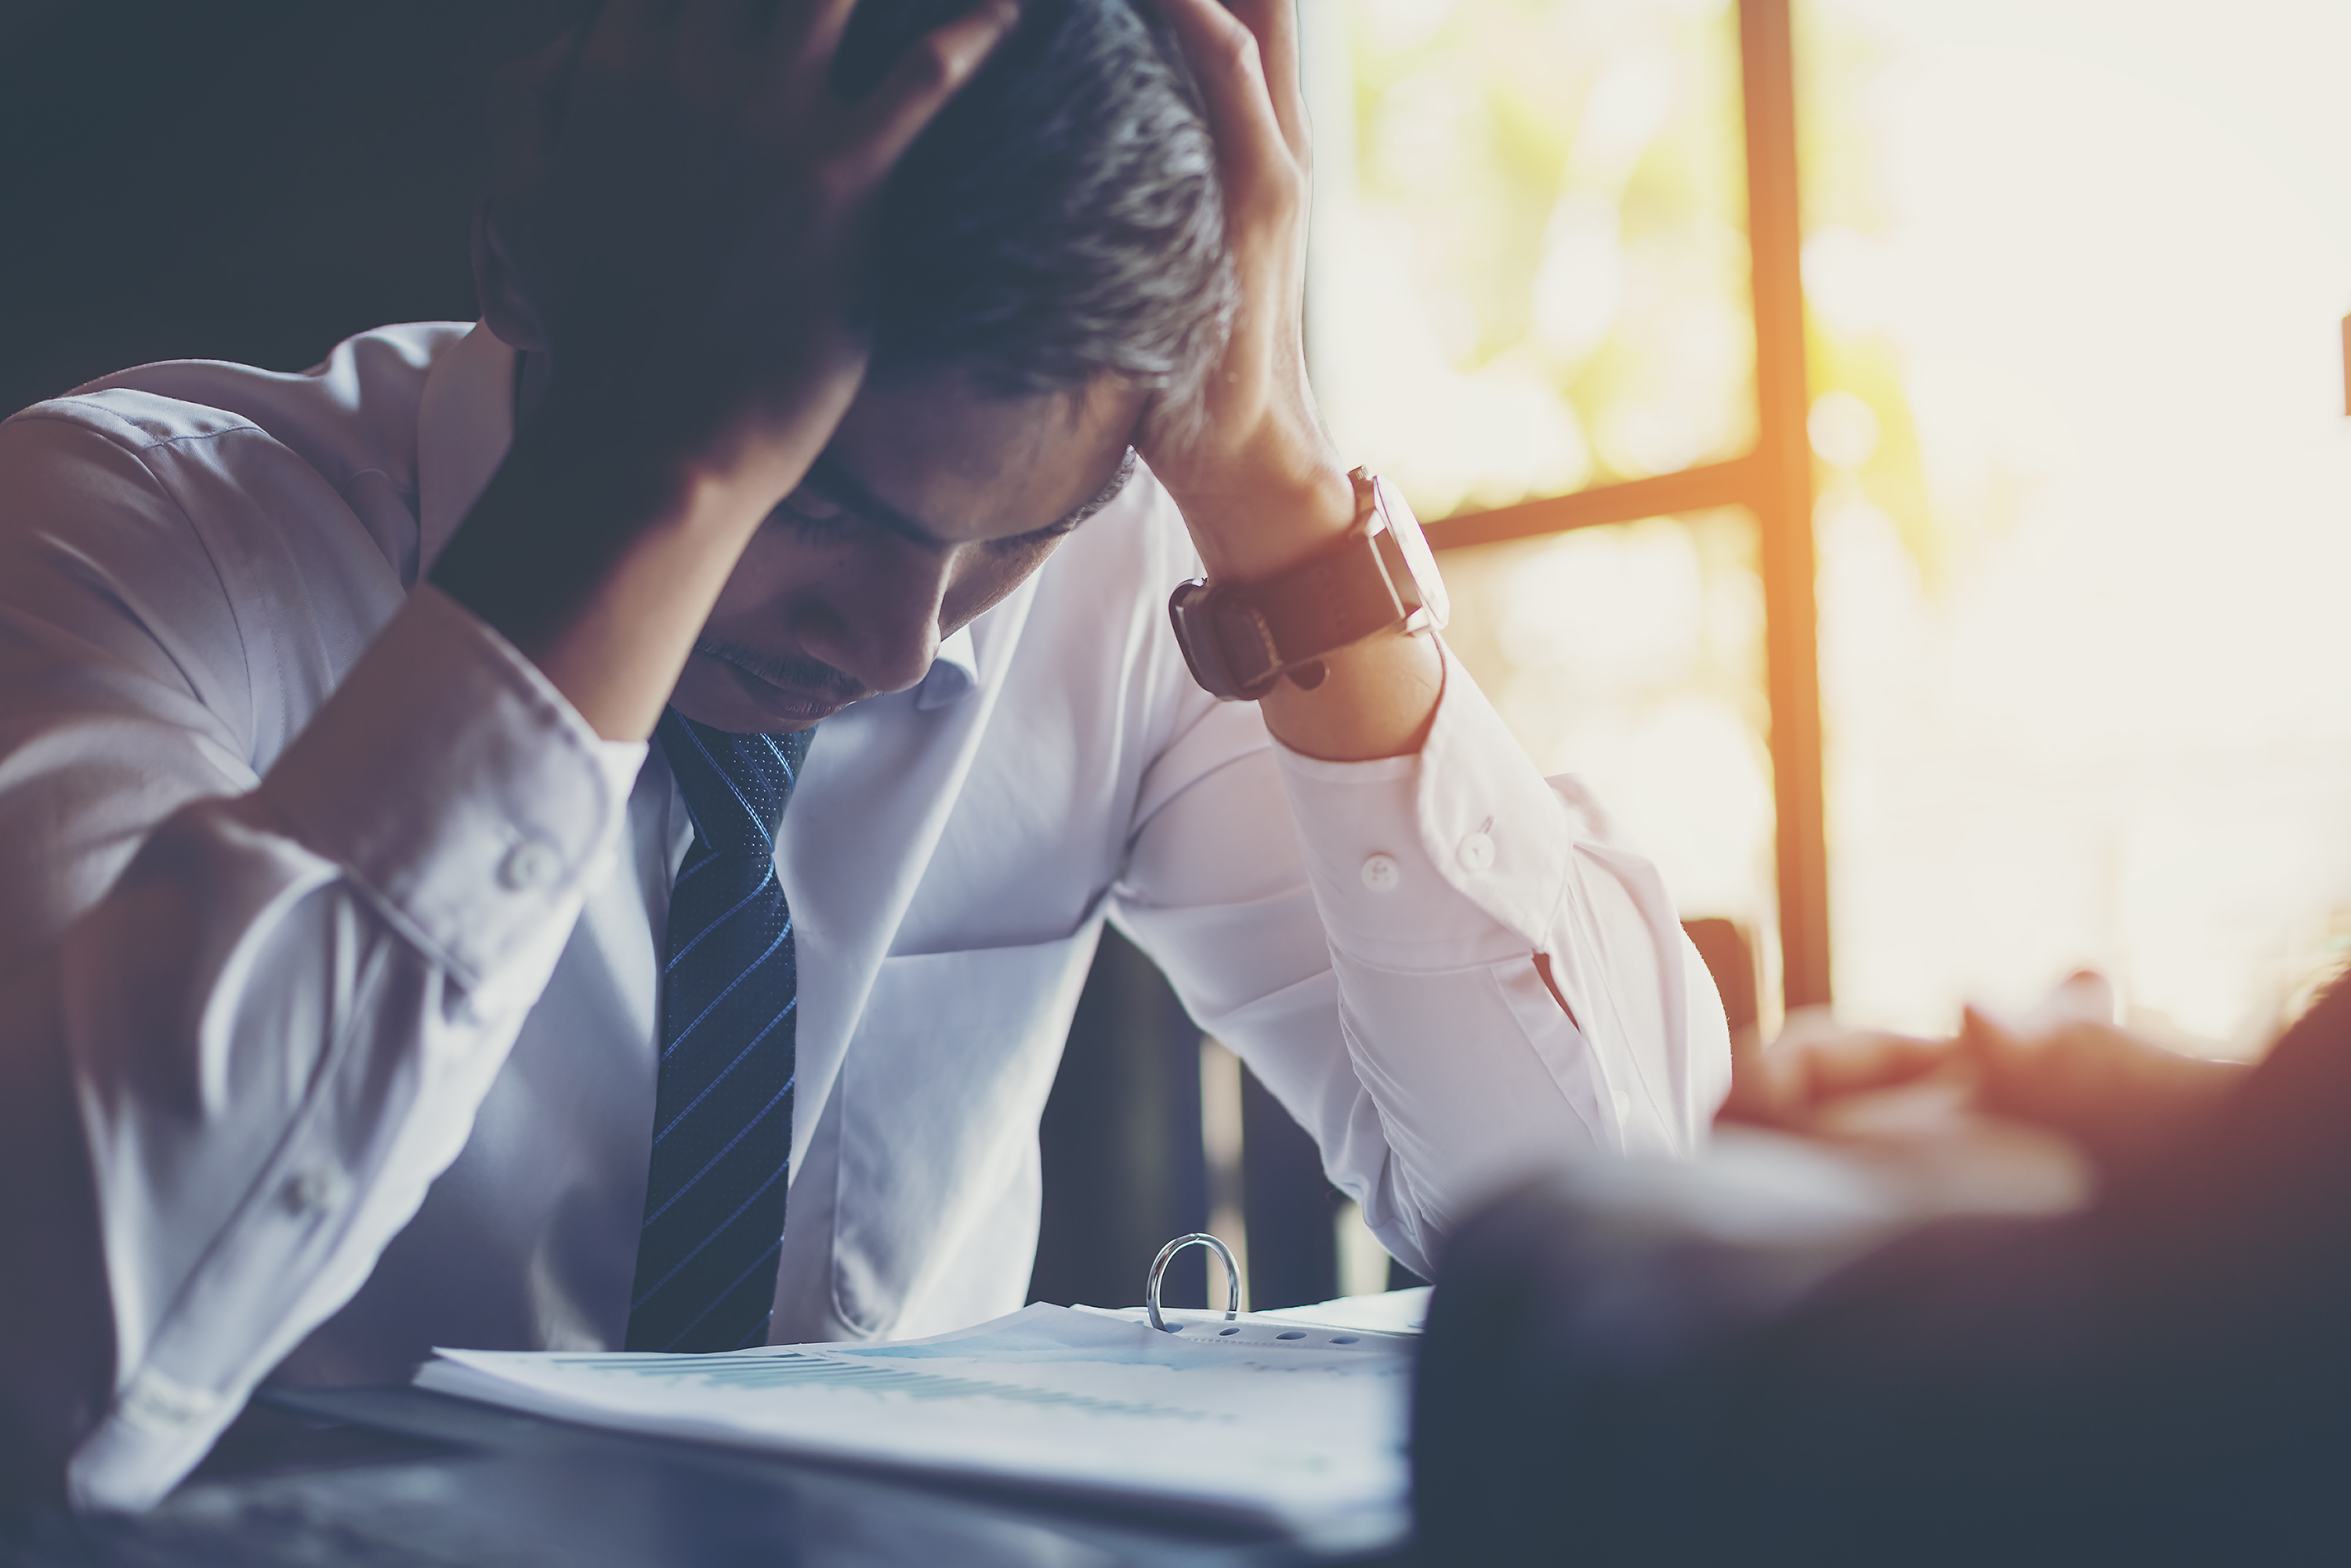 Adverse Effects of Stress